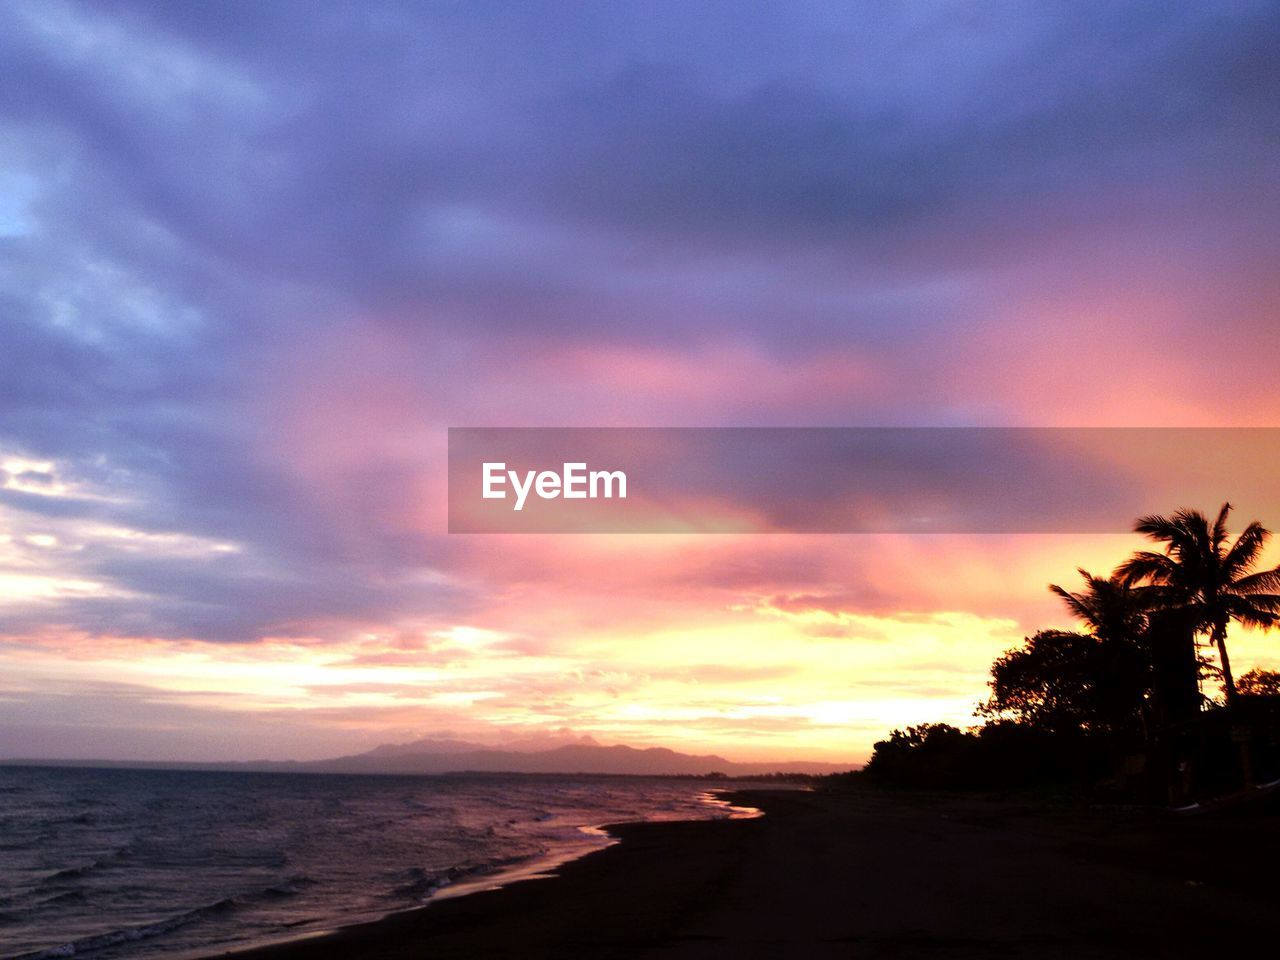 sunset, sea, beach, sky, silhouette, scenics, beauty in nature, nature, tranquil scene, water, tranquility, horizon over water, no people, holiday, outdoors, tree, palm tree